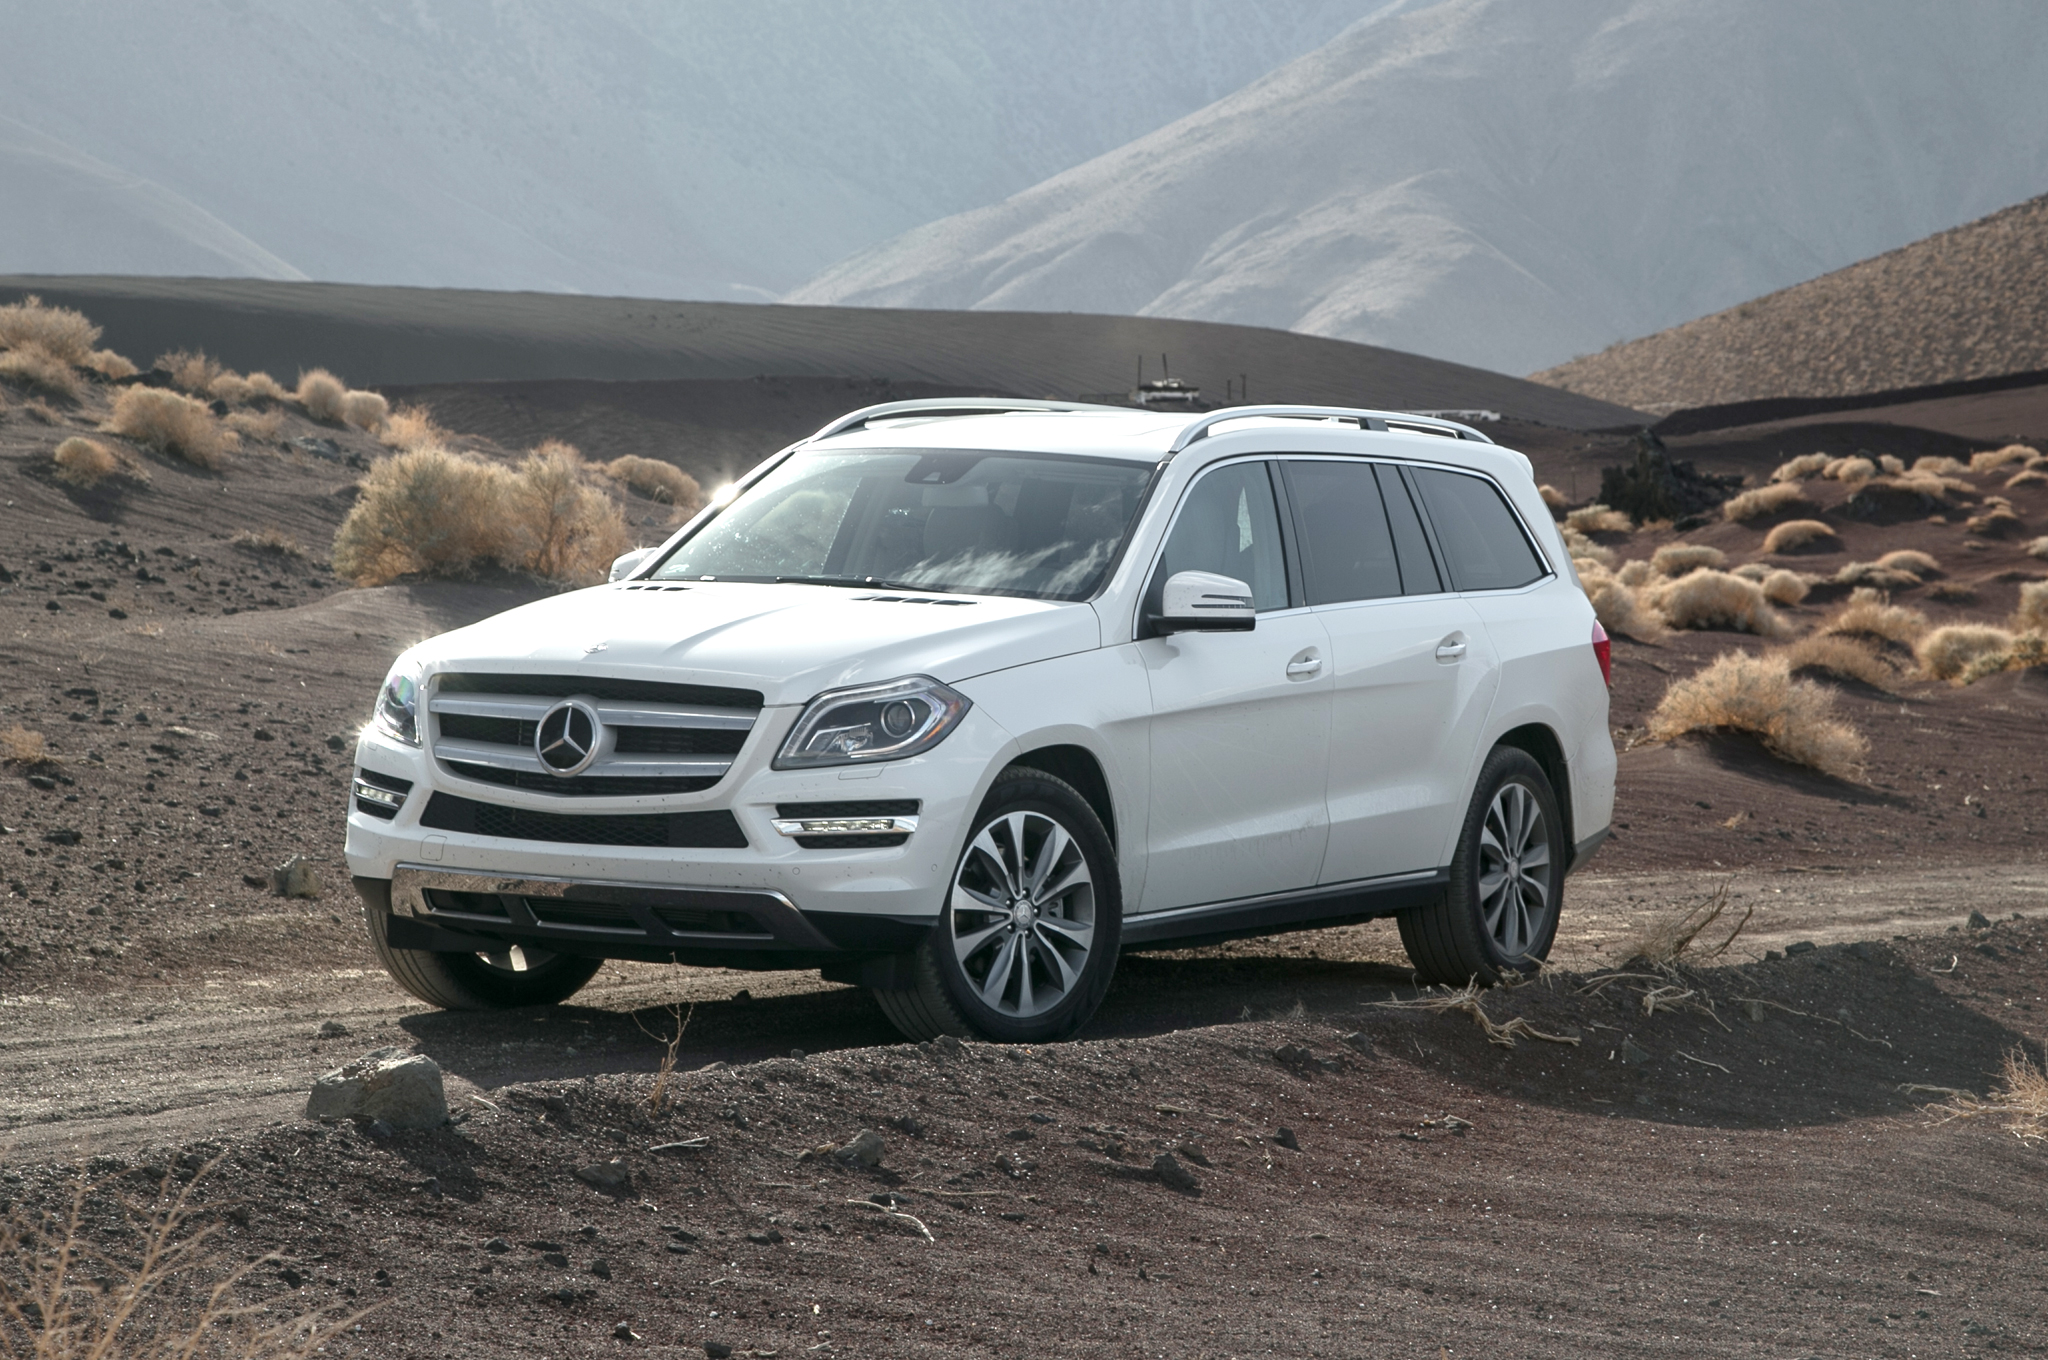 2013 Mercedes-Benz GL350 Bluetec 4MATIC Update 2 - Motor Trend